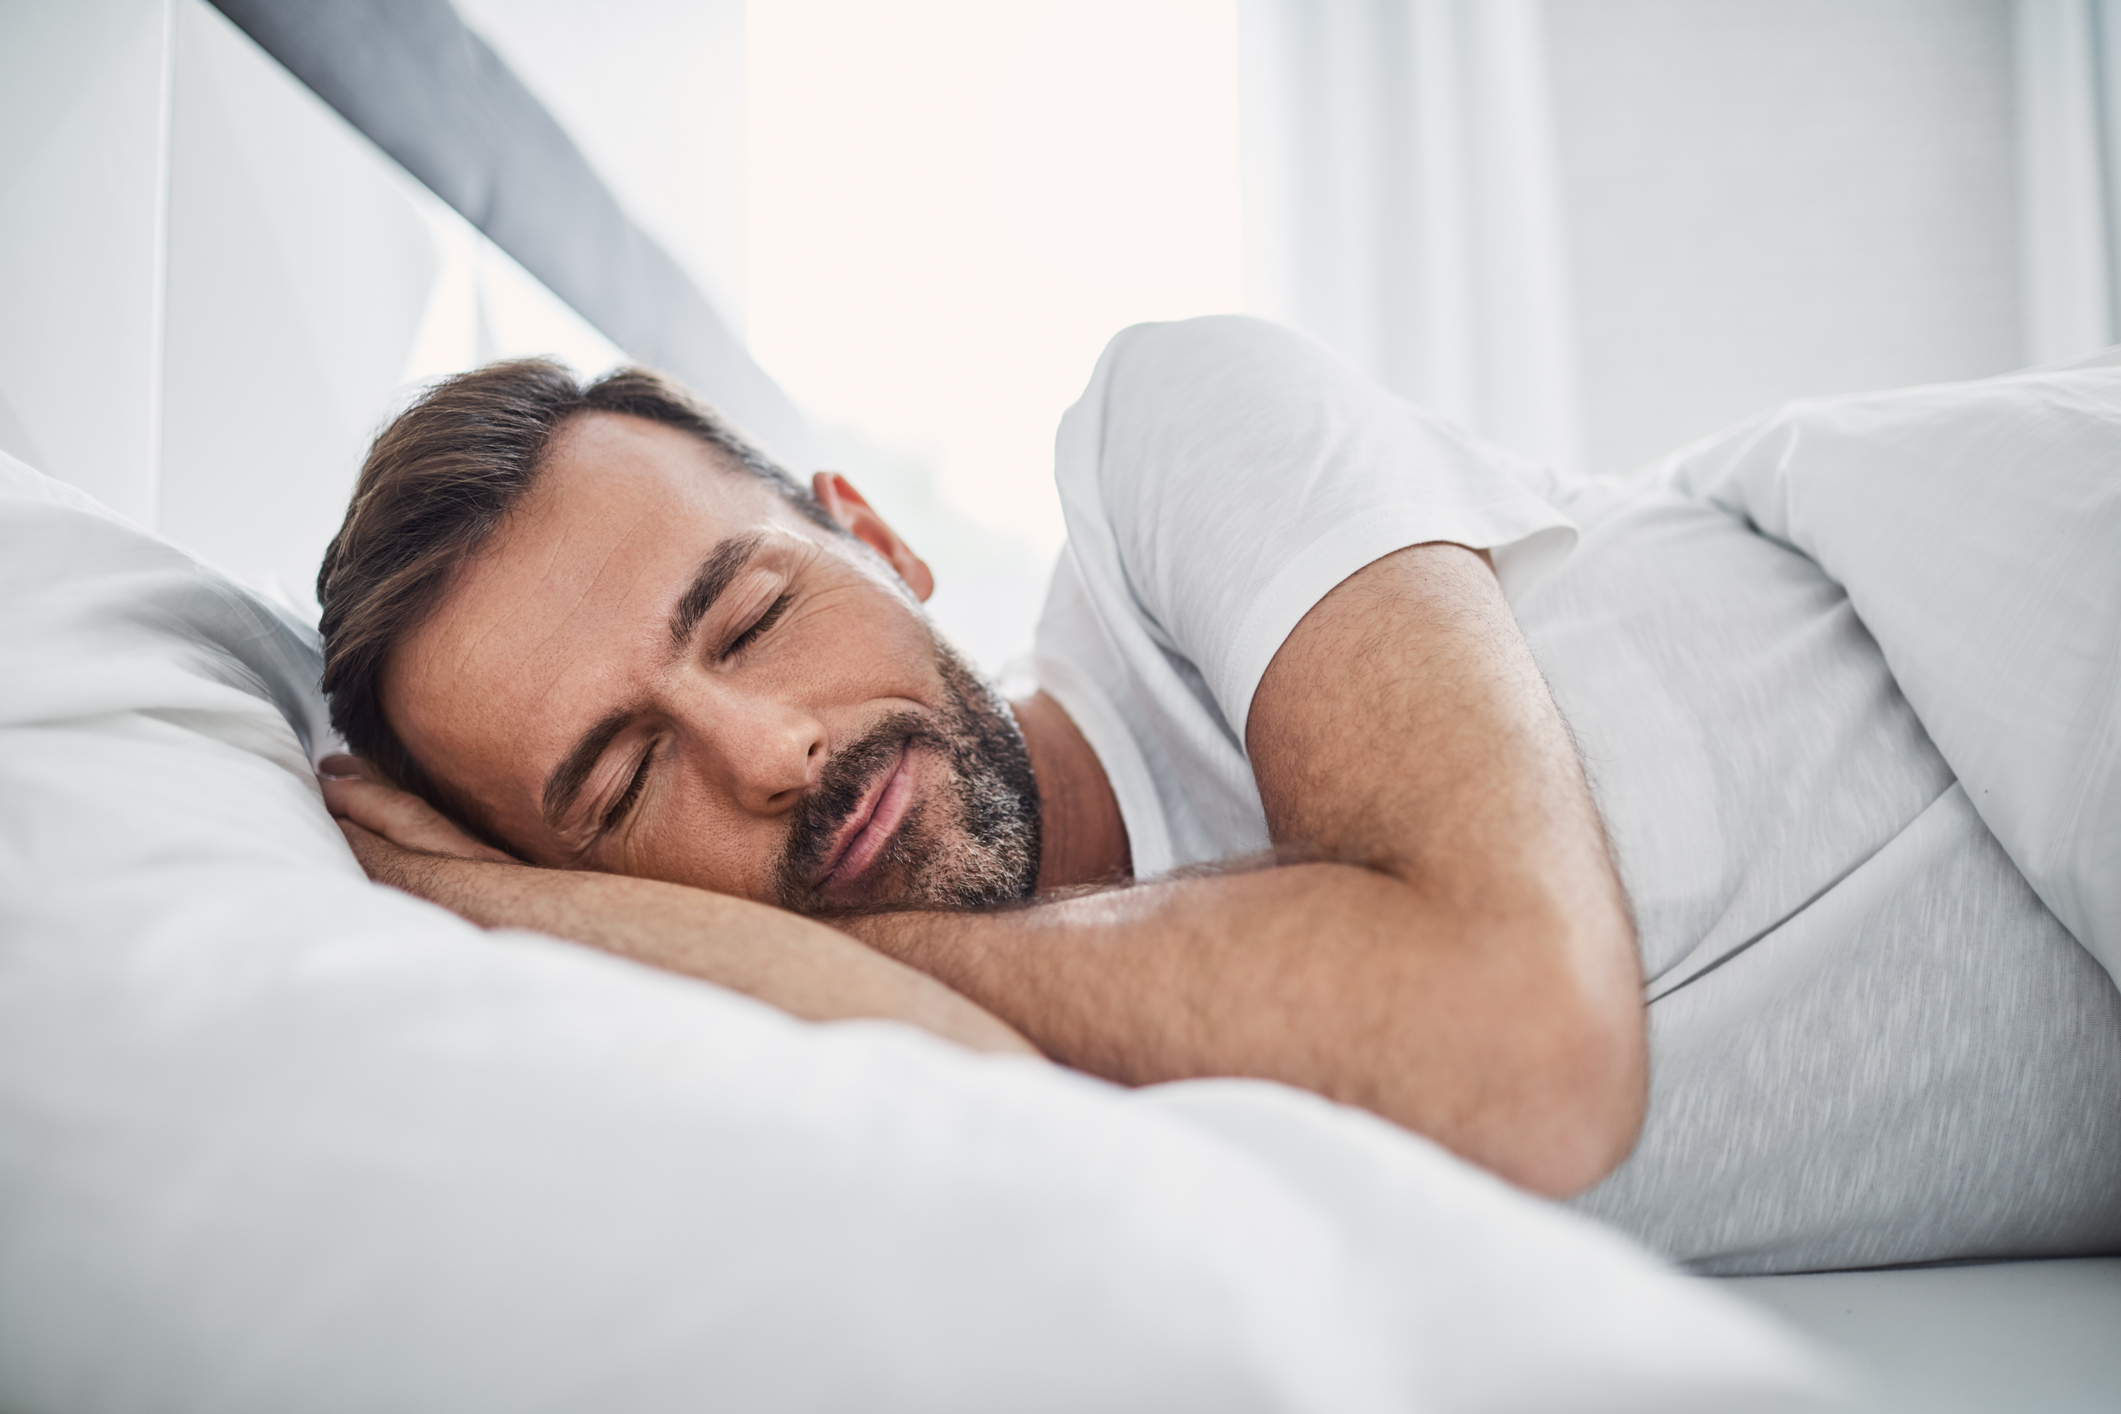 visualizes man sleeping soundly as a result of using cbd for sleep